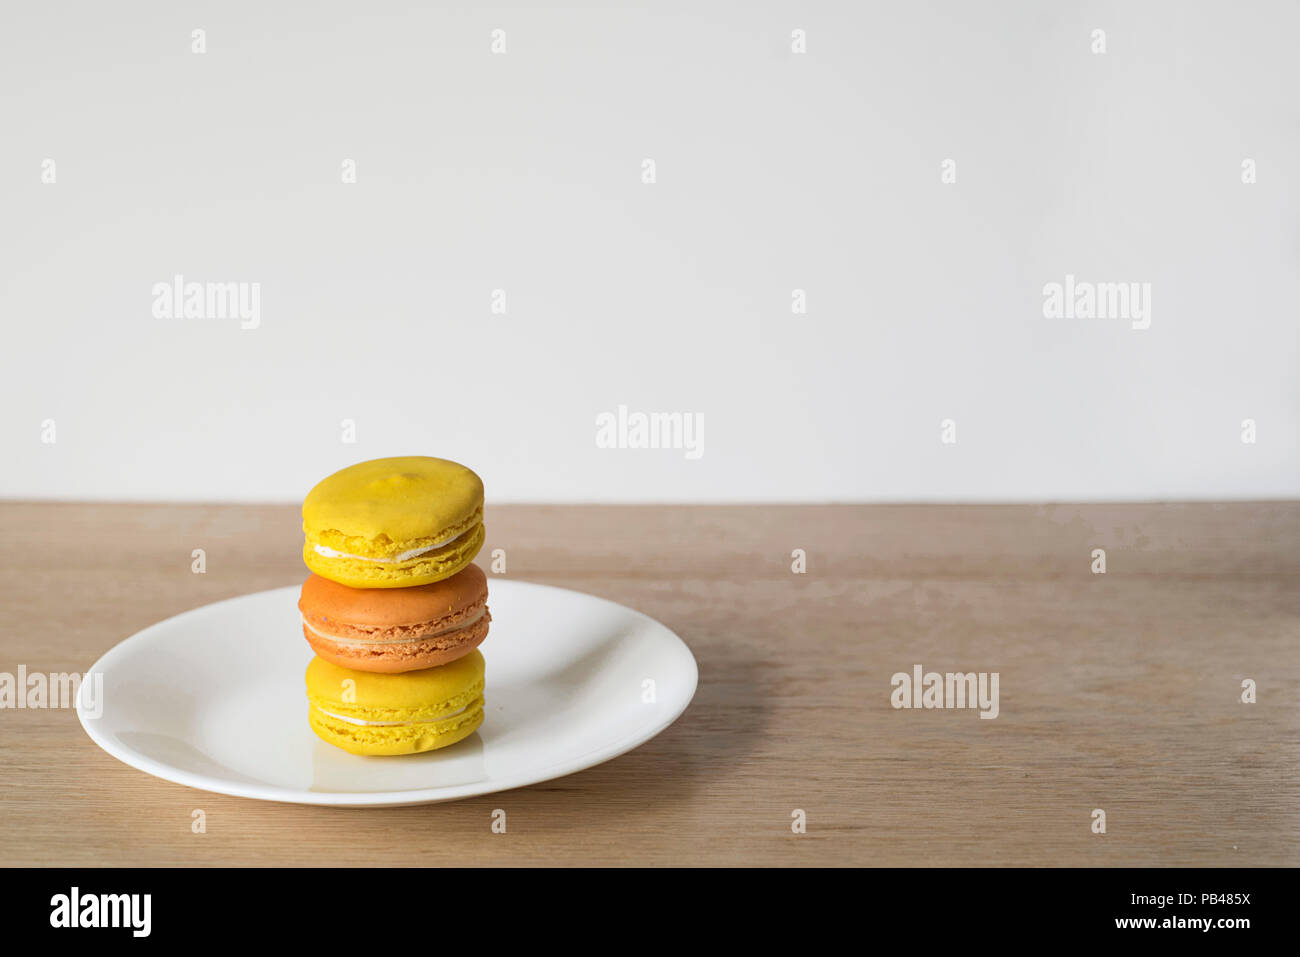 Wide Shot of Orange and Yellow Macaron Tower on a White Plate, Wood Counter, and Light Background - Stock Image